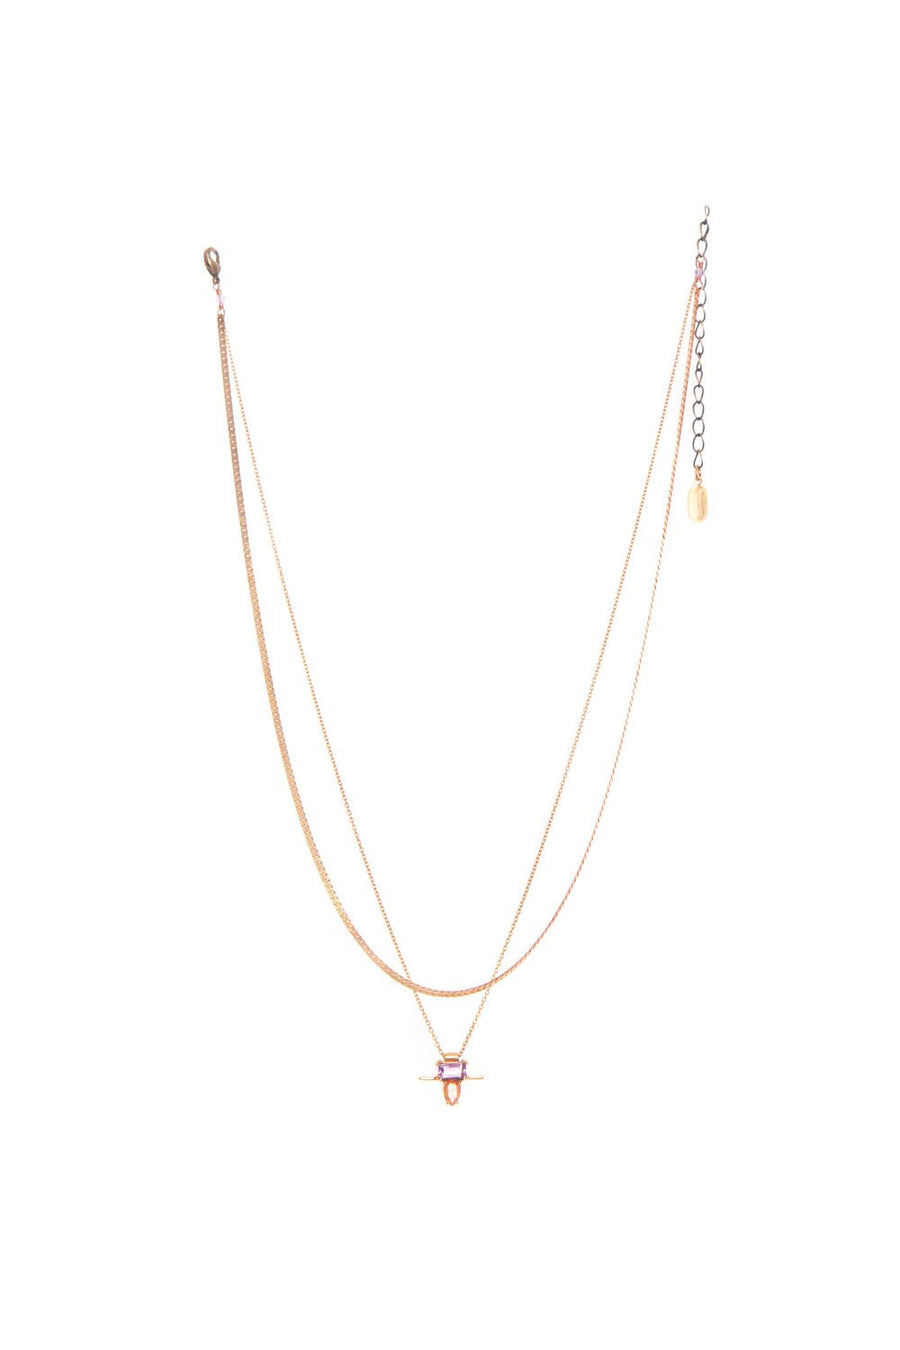 Hailey Gerrits - Lisbon Necklace - Pink Amethyst